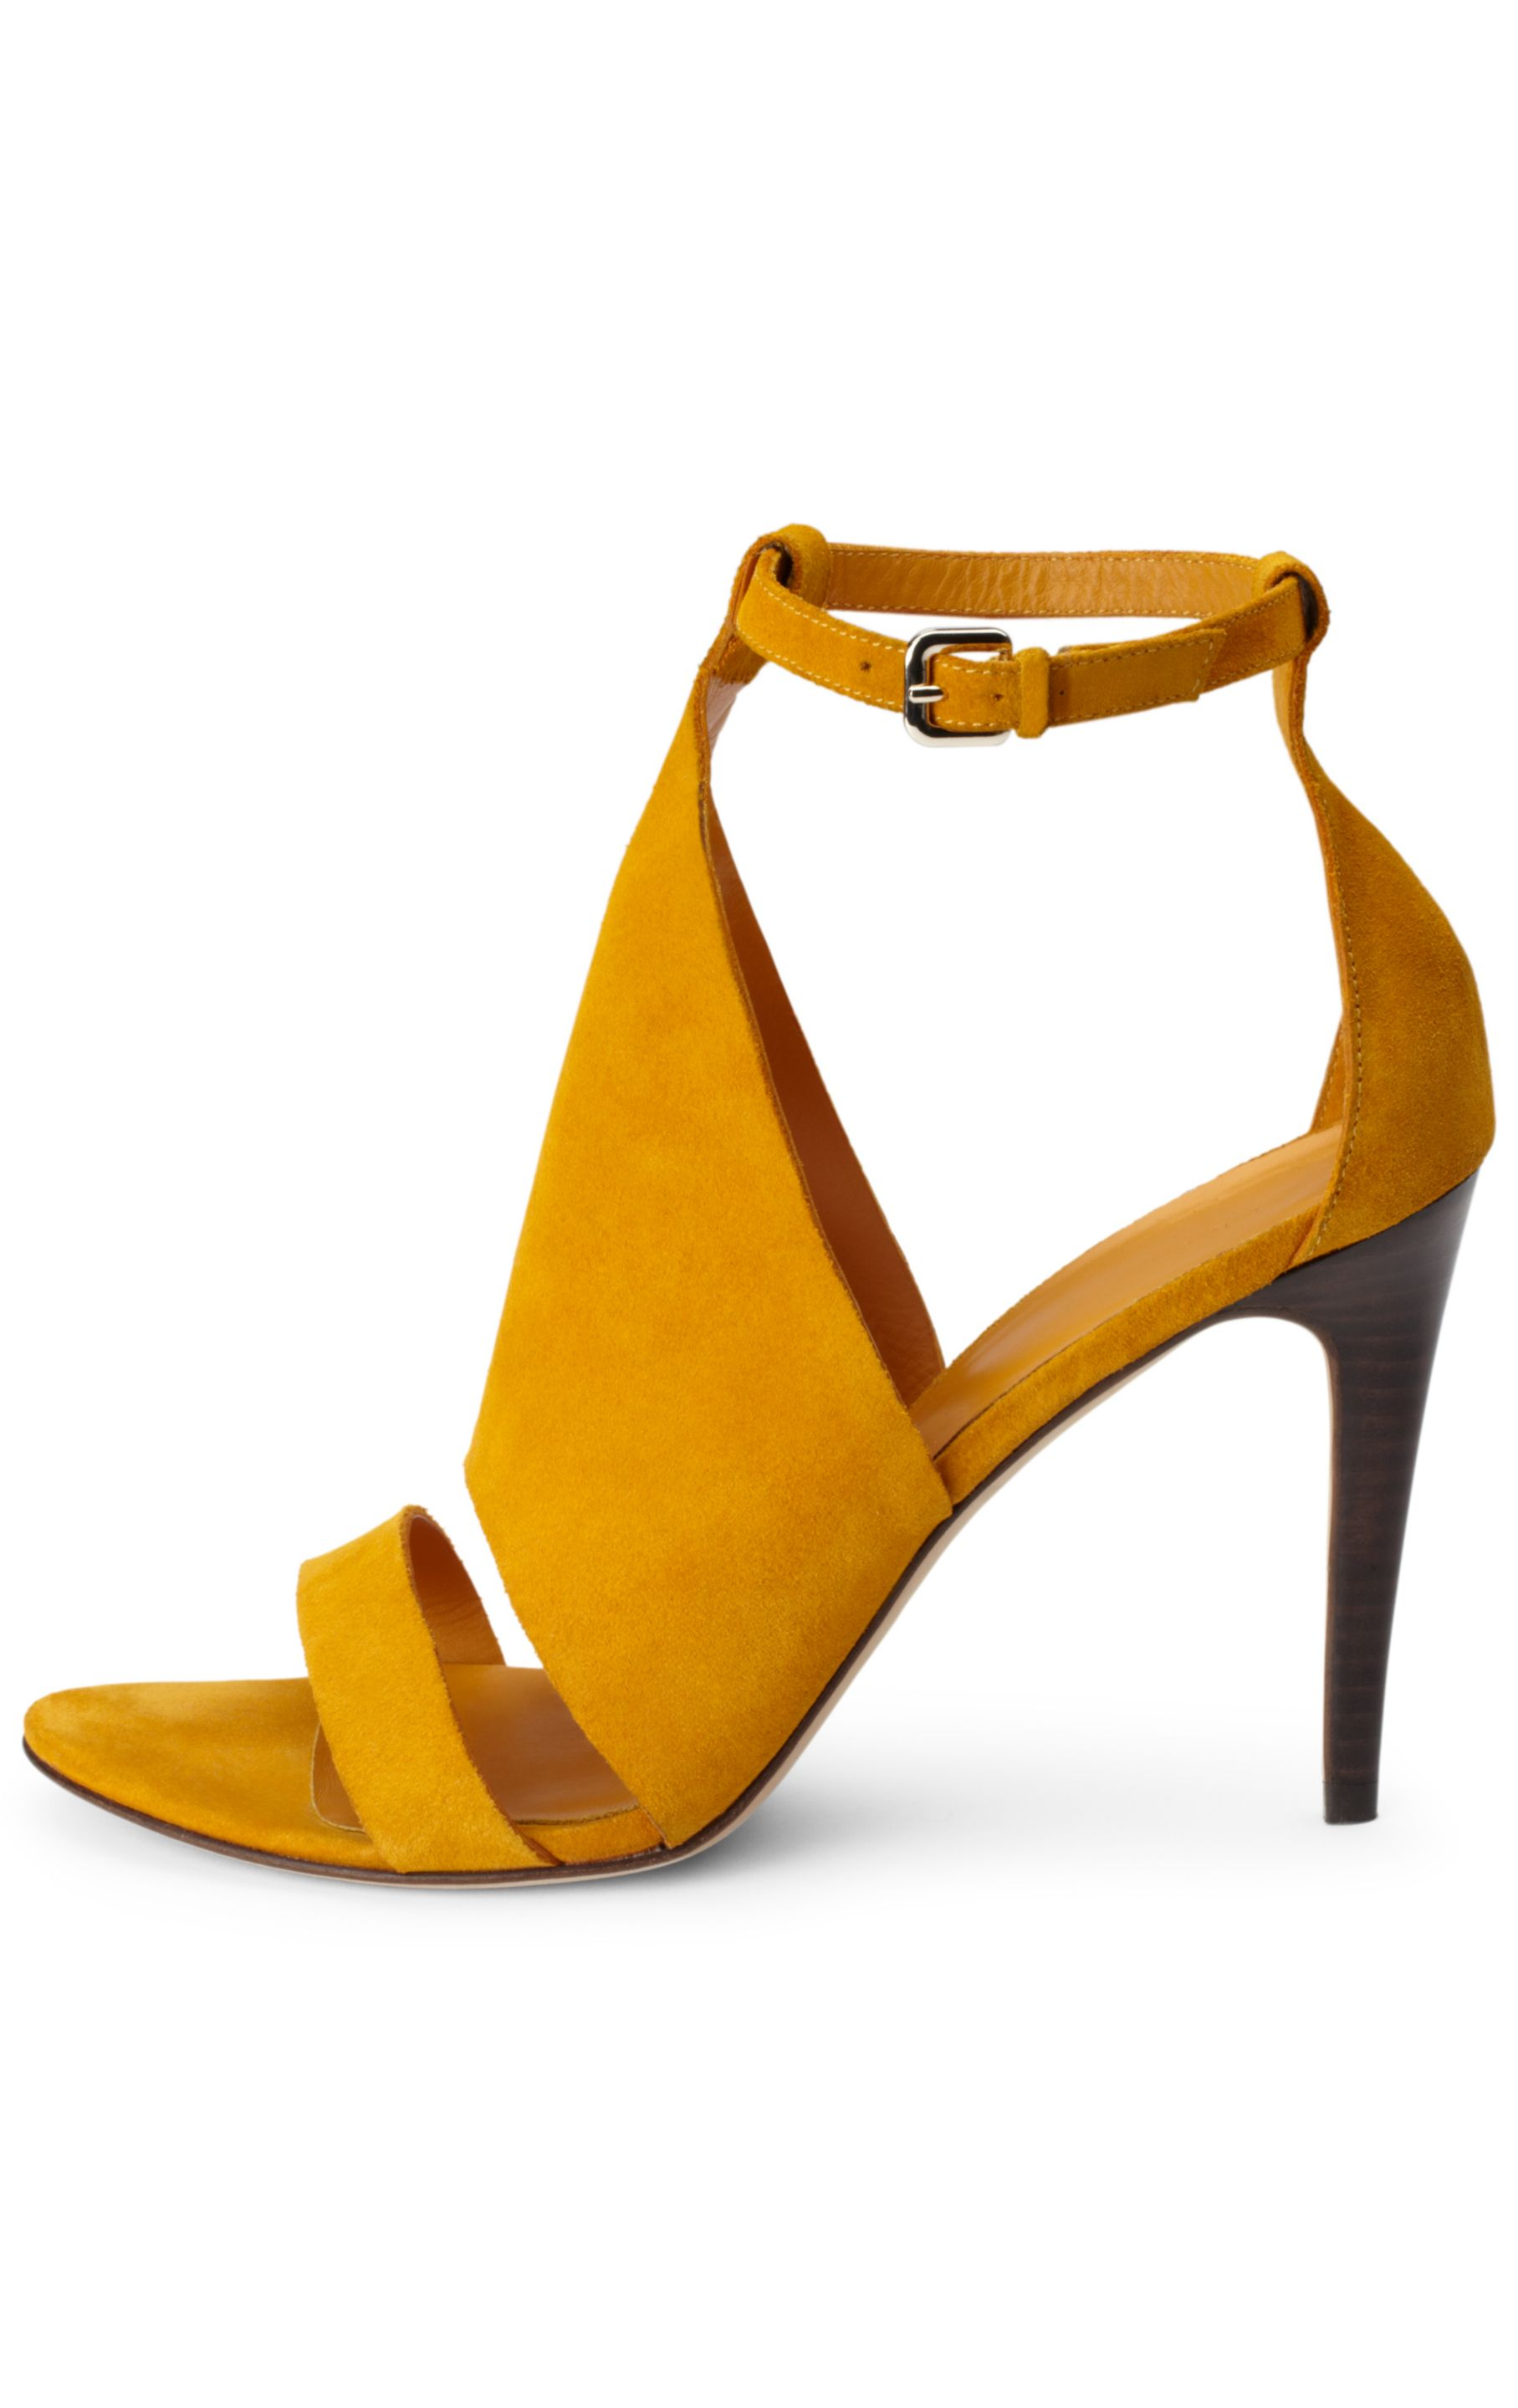 1d1a8fe3c39 CR-01 Mustard Yellow Velvet Pointed Pumps